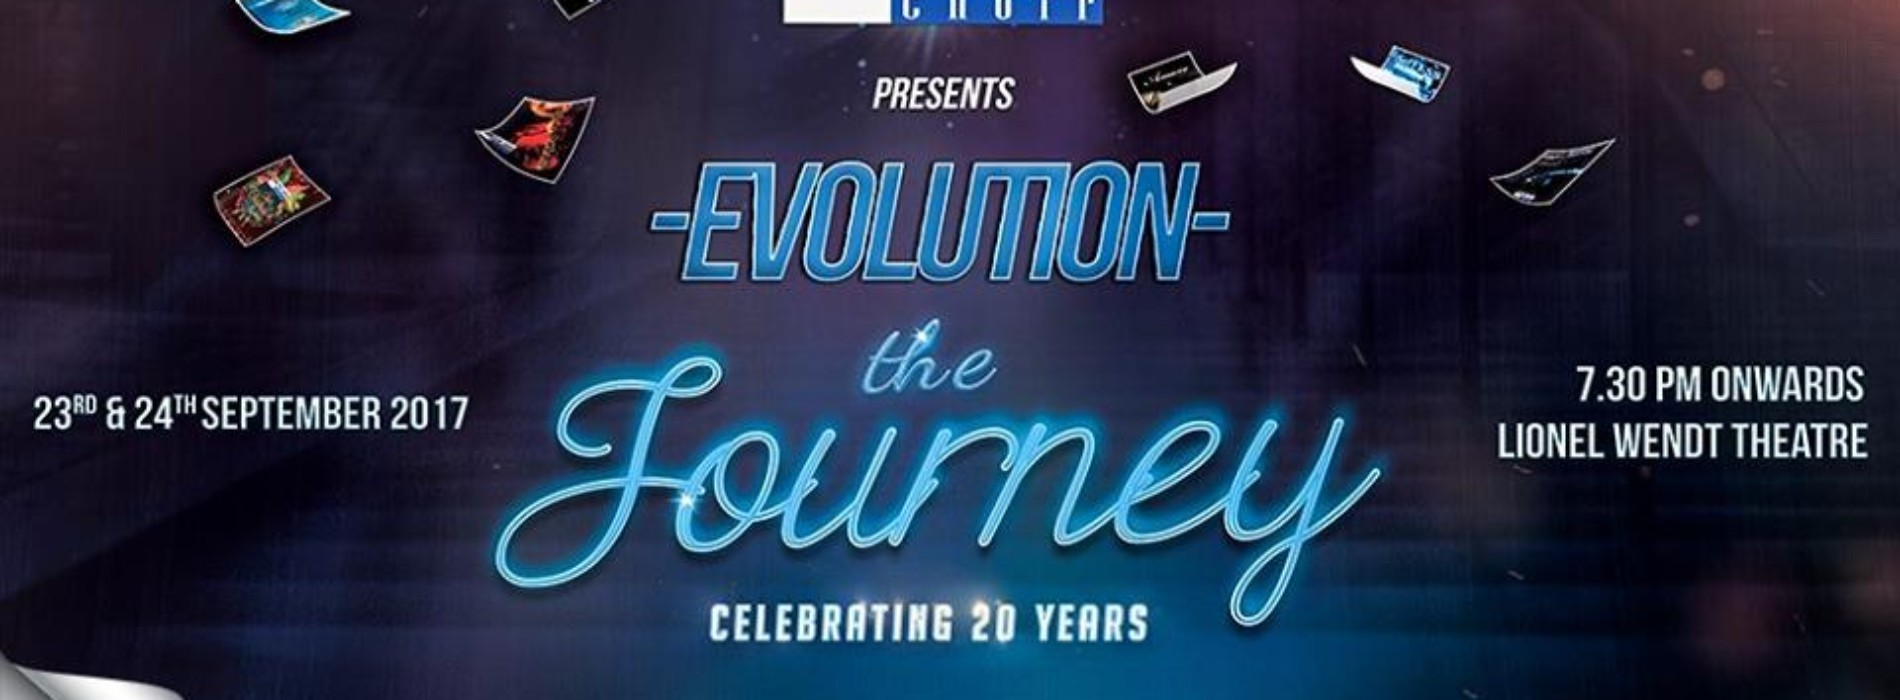 Evolution: The Journey By The OJC